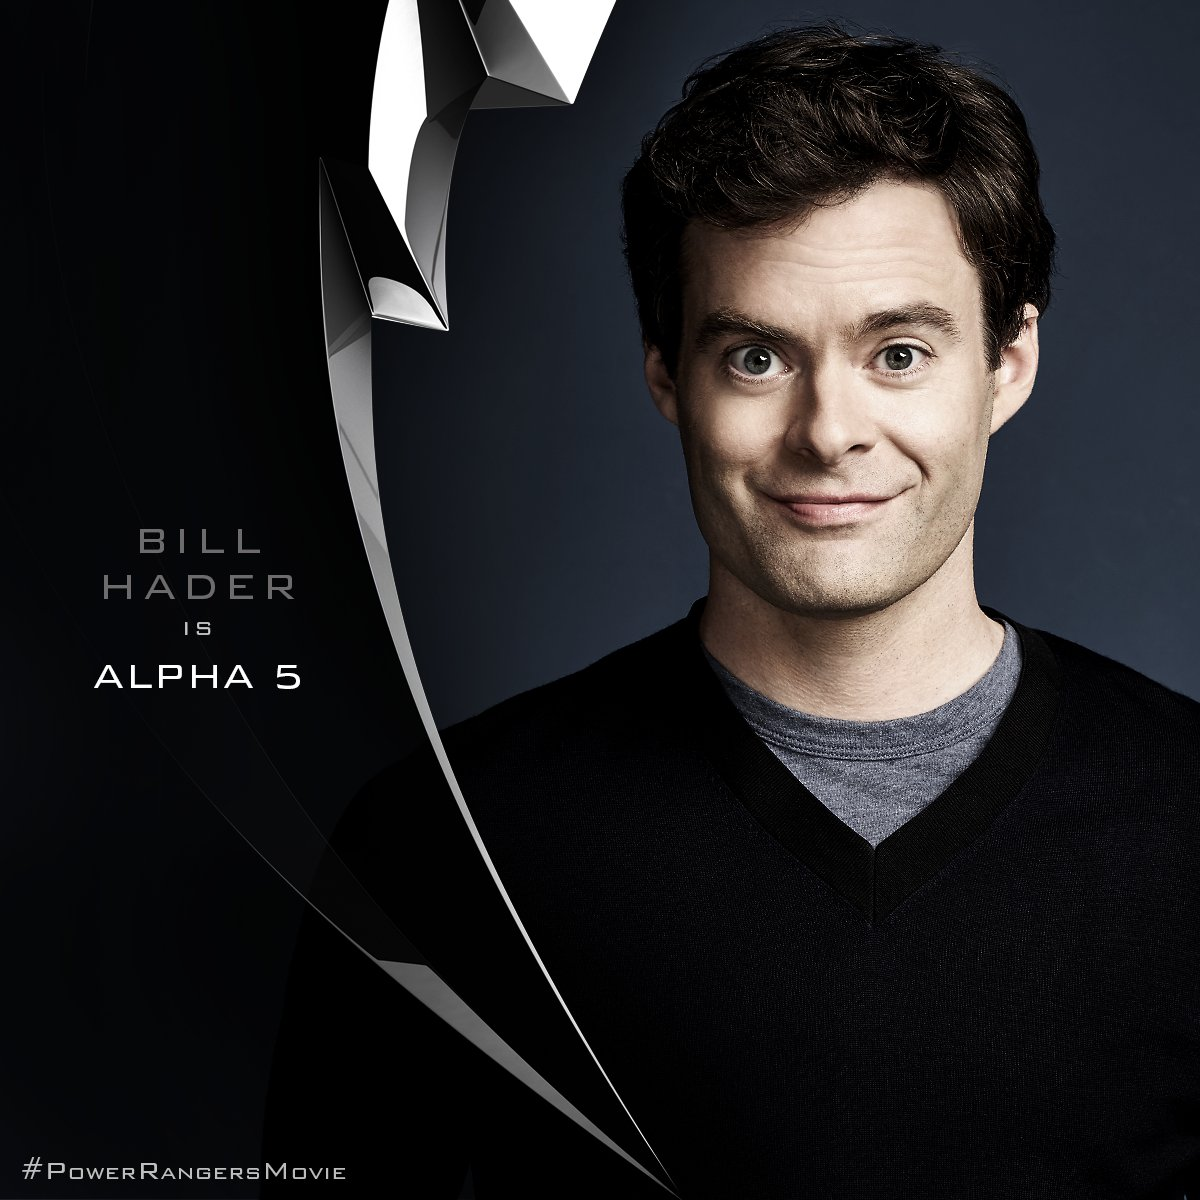 Trainwreck Star Bill Hader Will Voice Alpha 5 In Lionsgate's Power Rangers Reboot